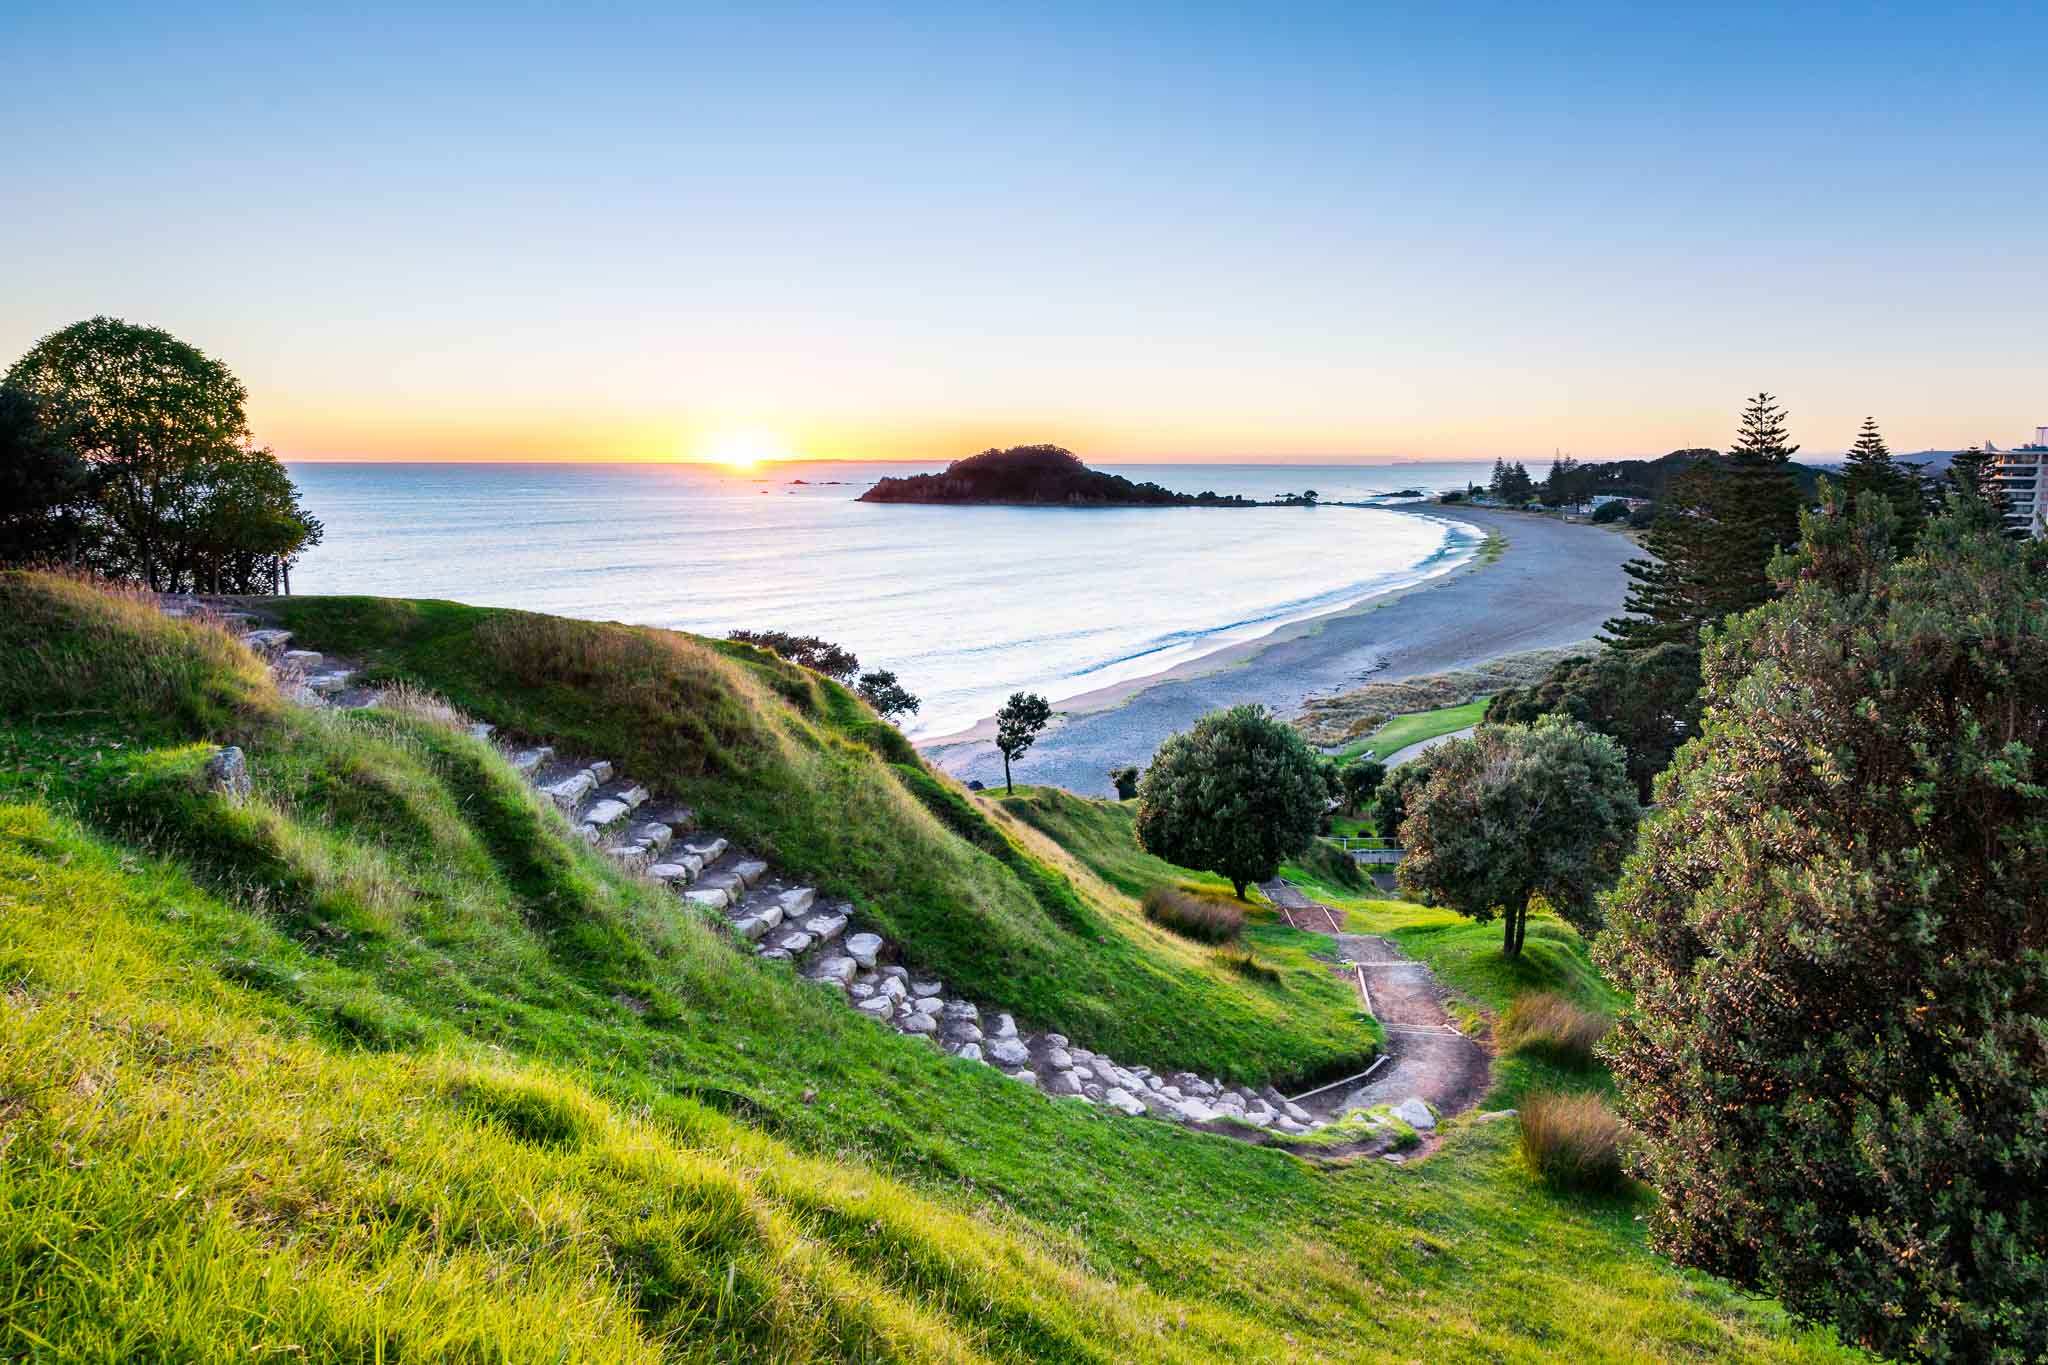 Sunrise at summit track on Mount Maunganui New Zealand